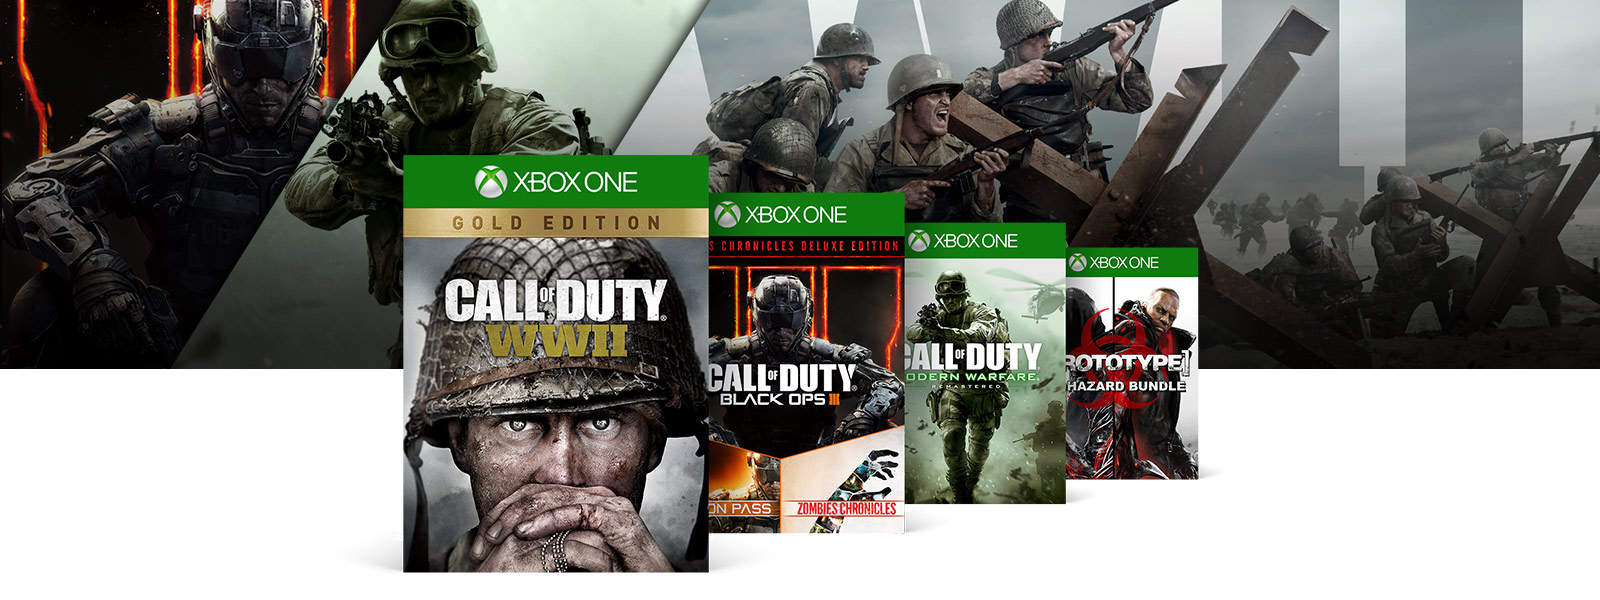 Call of Duty WWI Call of Duty Black Ops 3 Call of Duty Modern Warfare 3 Prototype boxshots